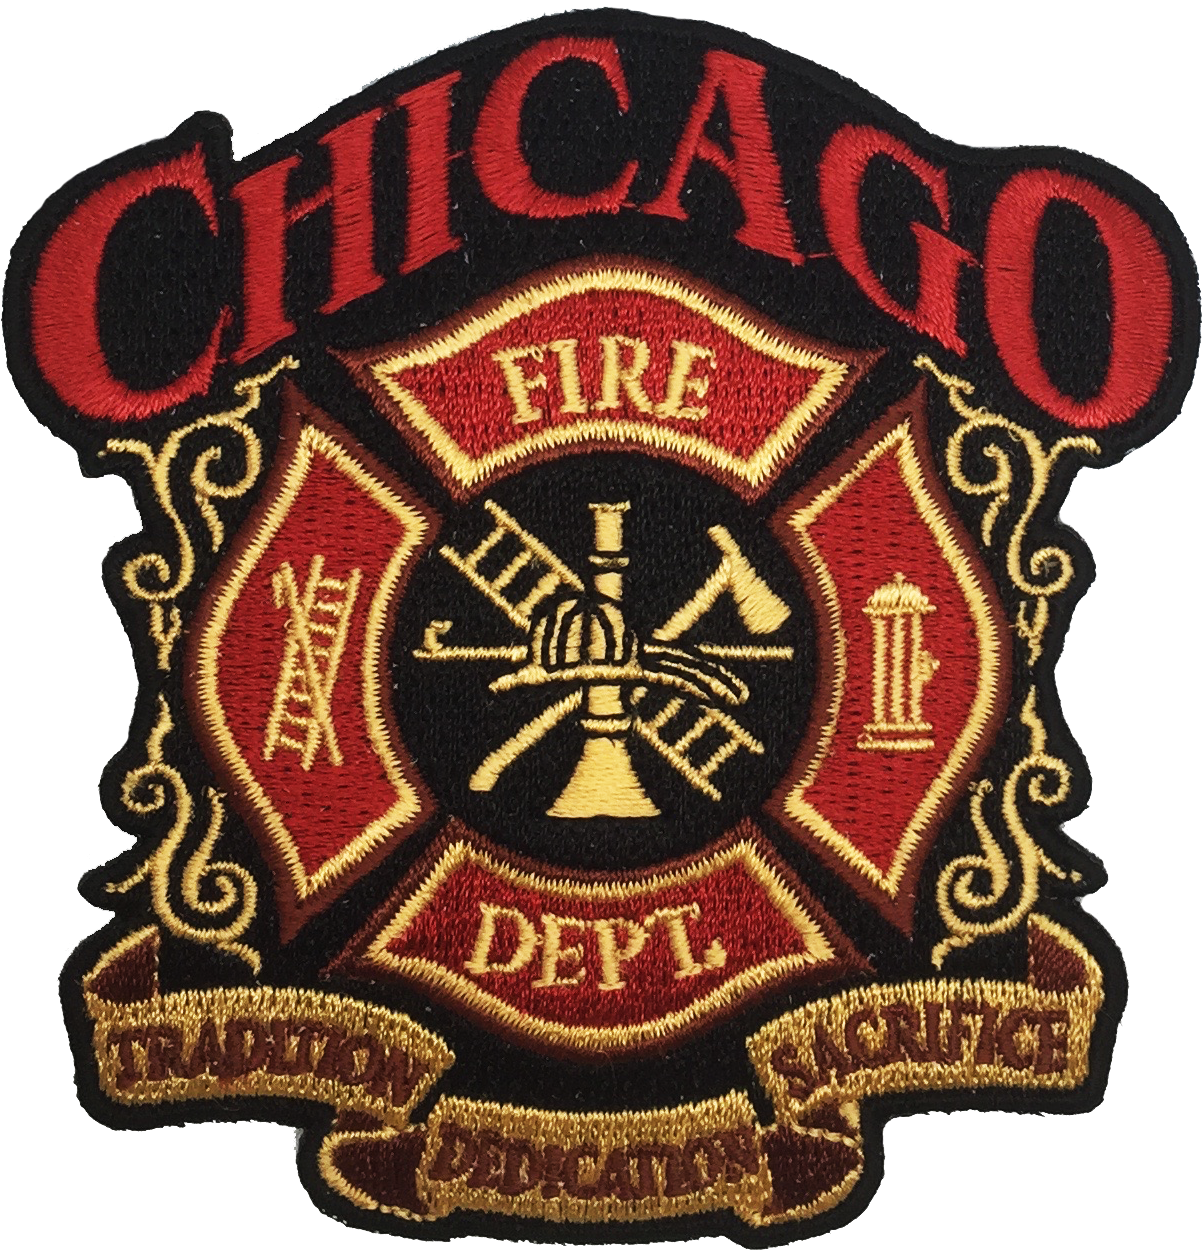 CHICAGO FIRE DEPARTMENT CREST PATCH